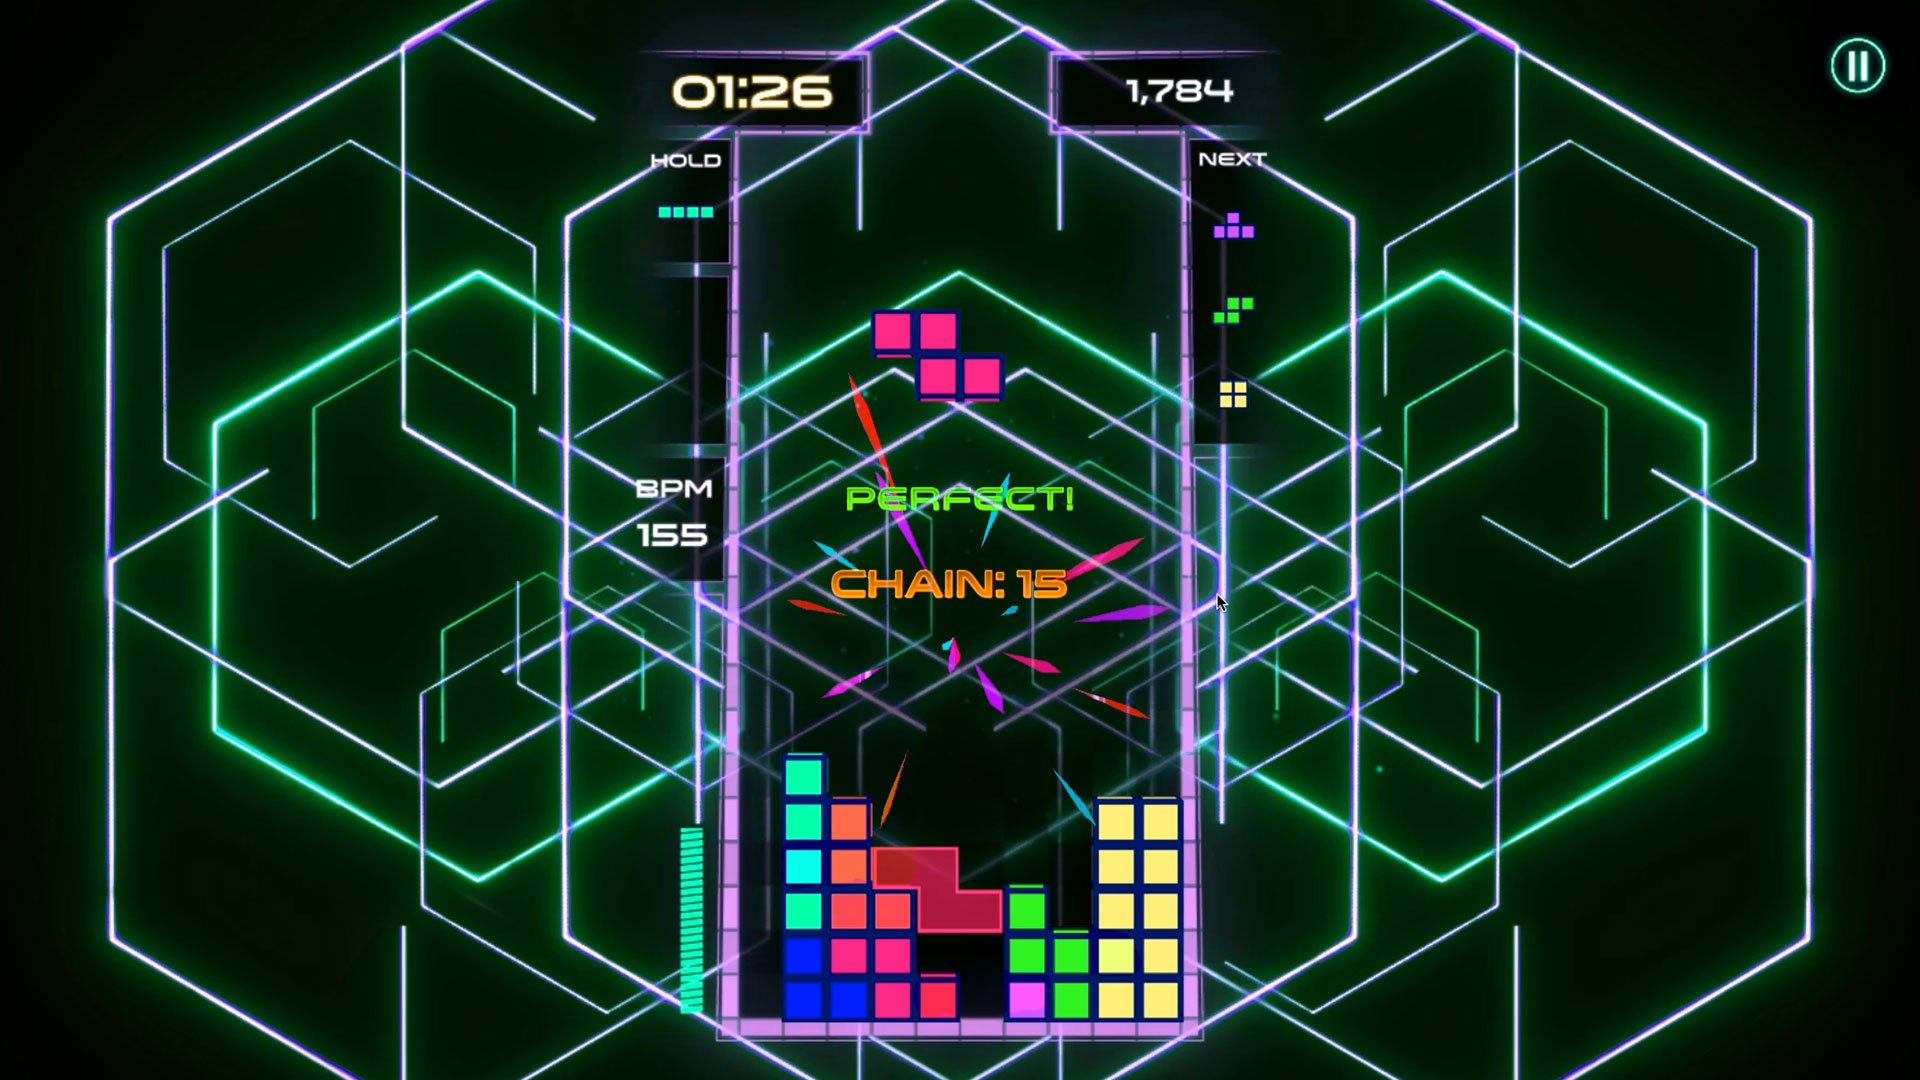 Tetris Beat launches on Apple Arcade with exclusive songs by trending artists!